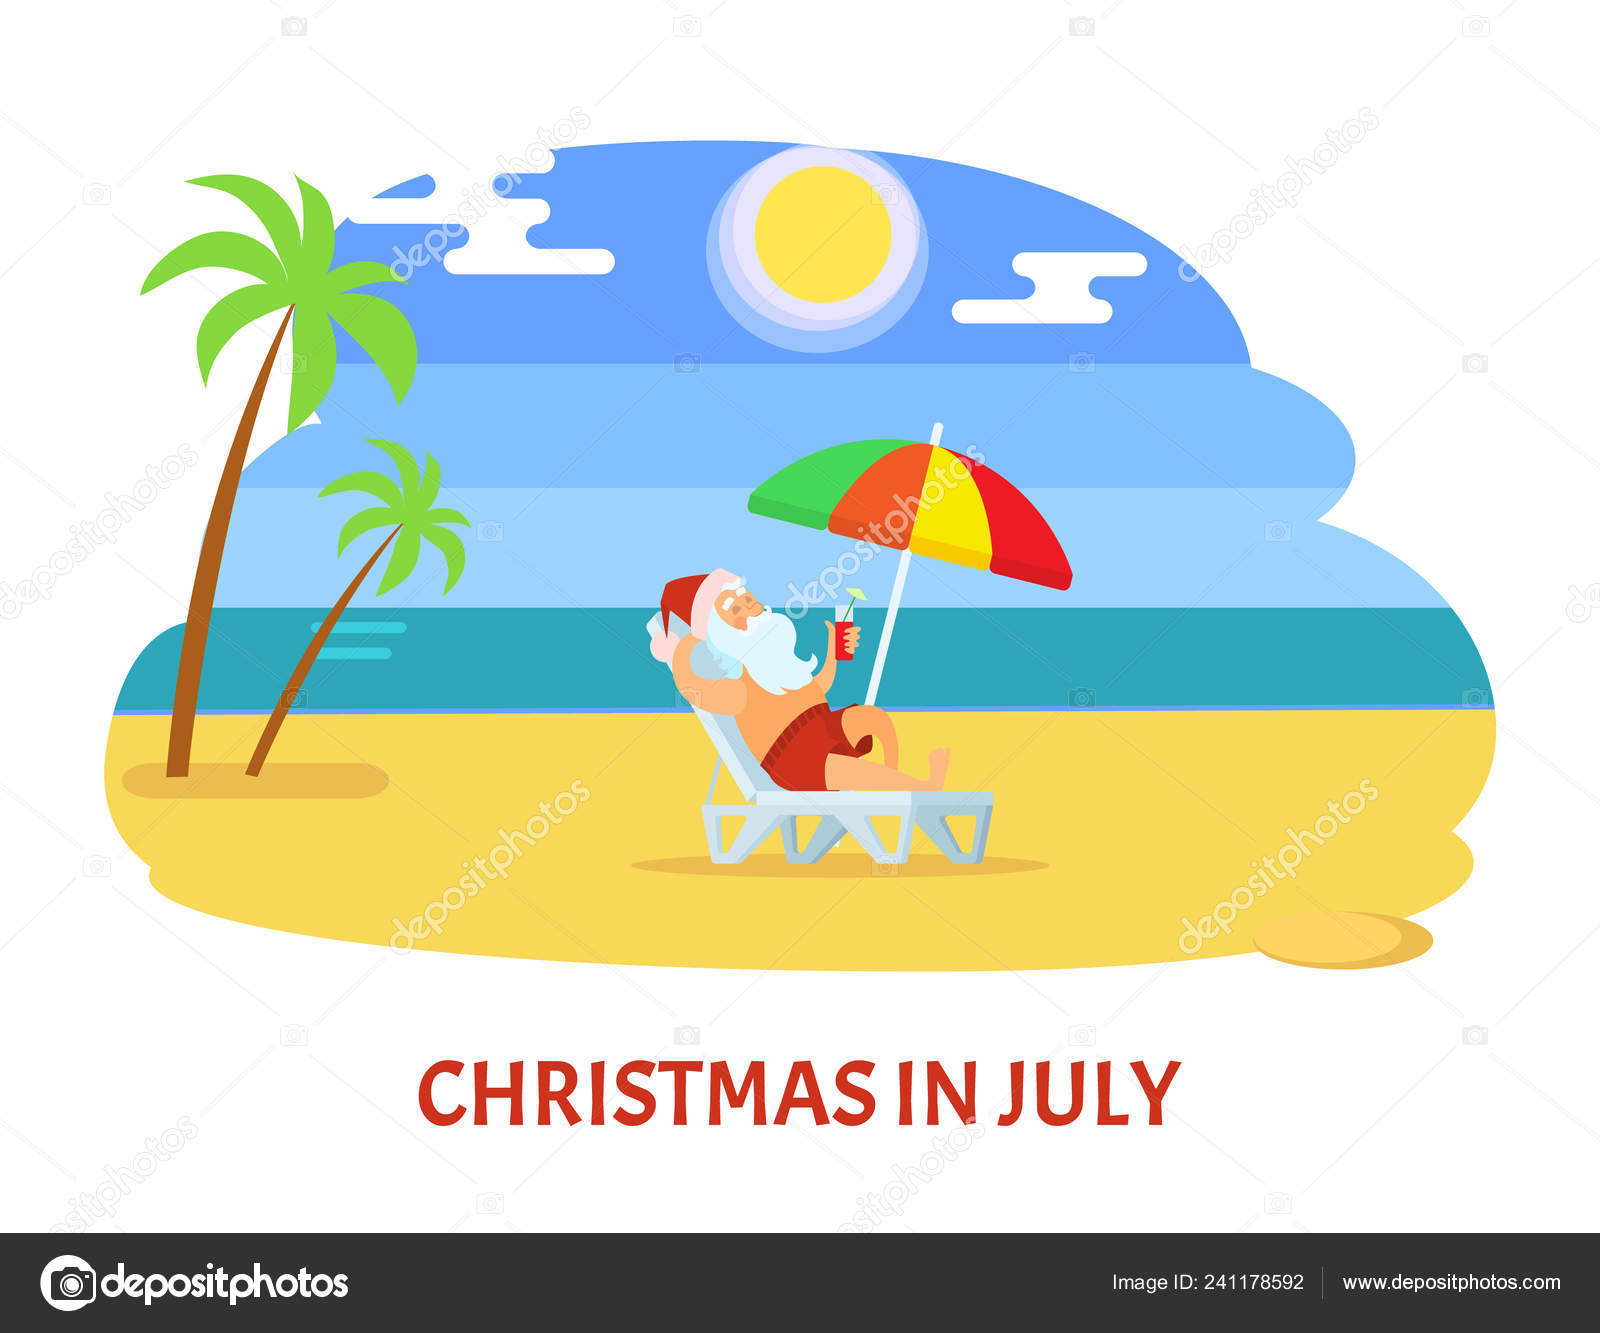 Christmas In July Clipart Free Download.Christmas In July Relaxing Holiday On Beach Vector Stock